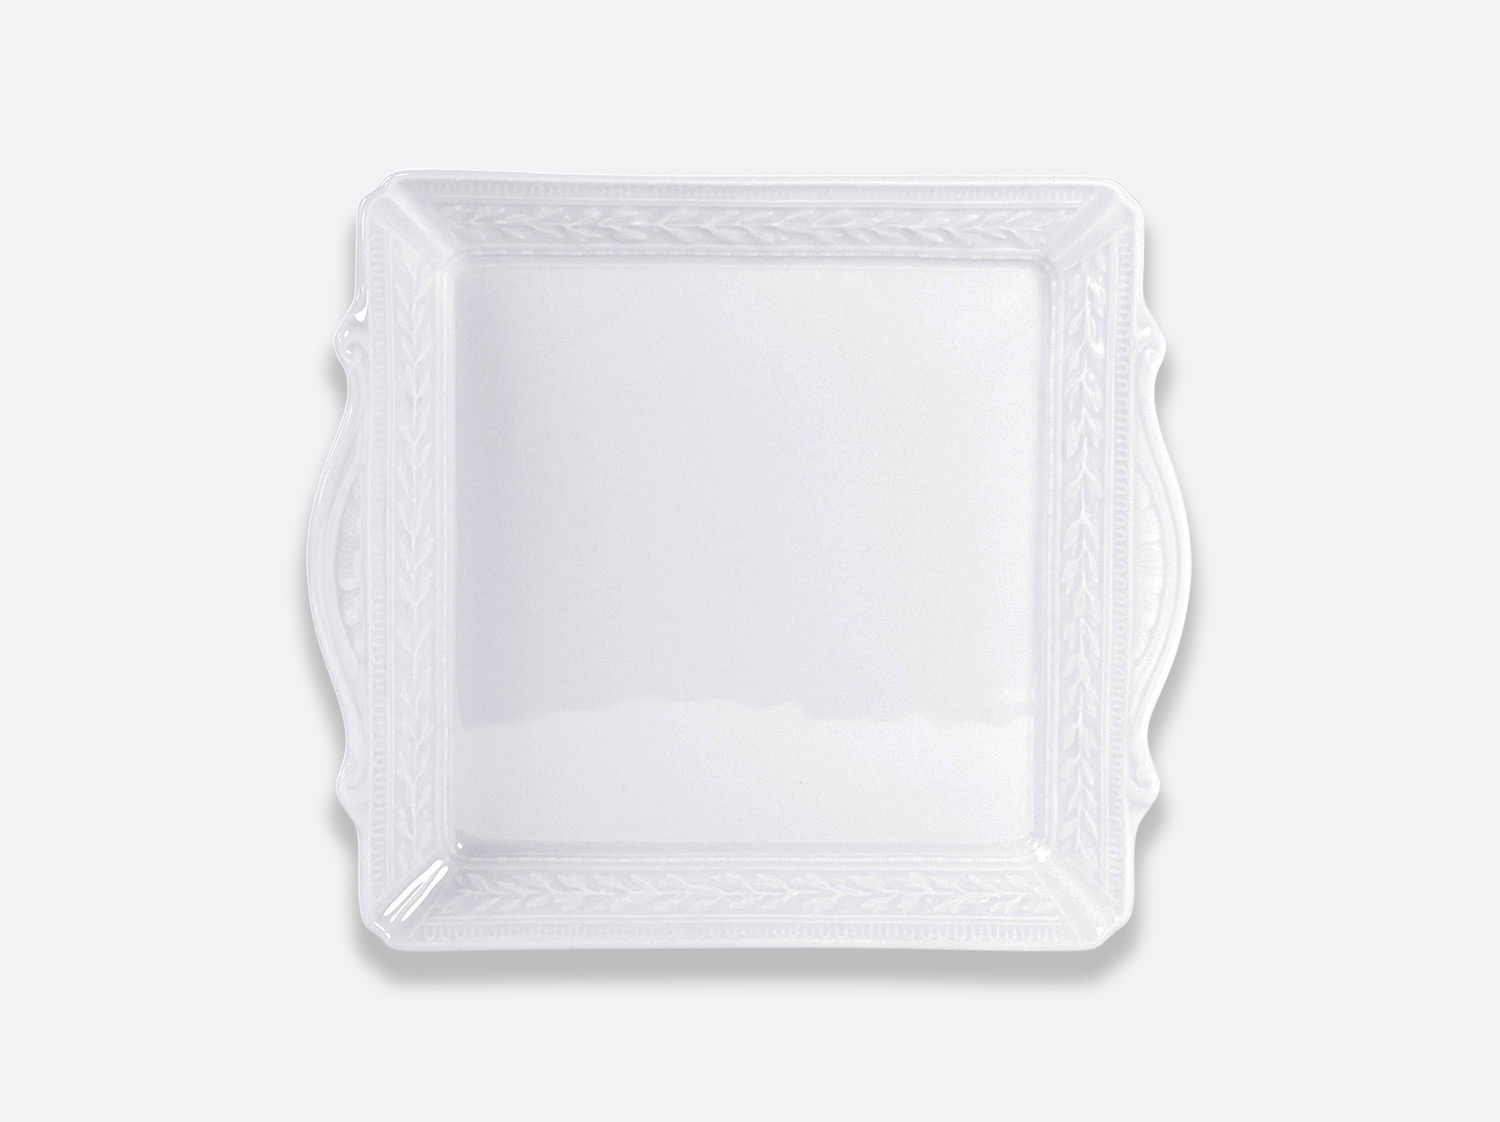 China Square handled tray 27 cm x 24 cm of the collection Louvre | Bernardaud